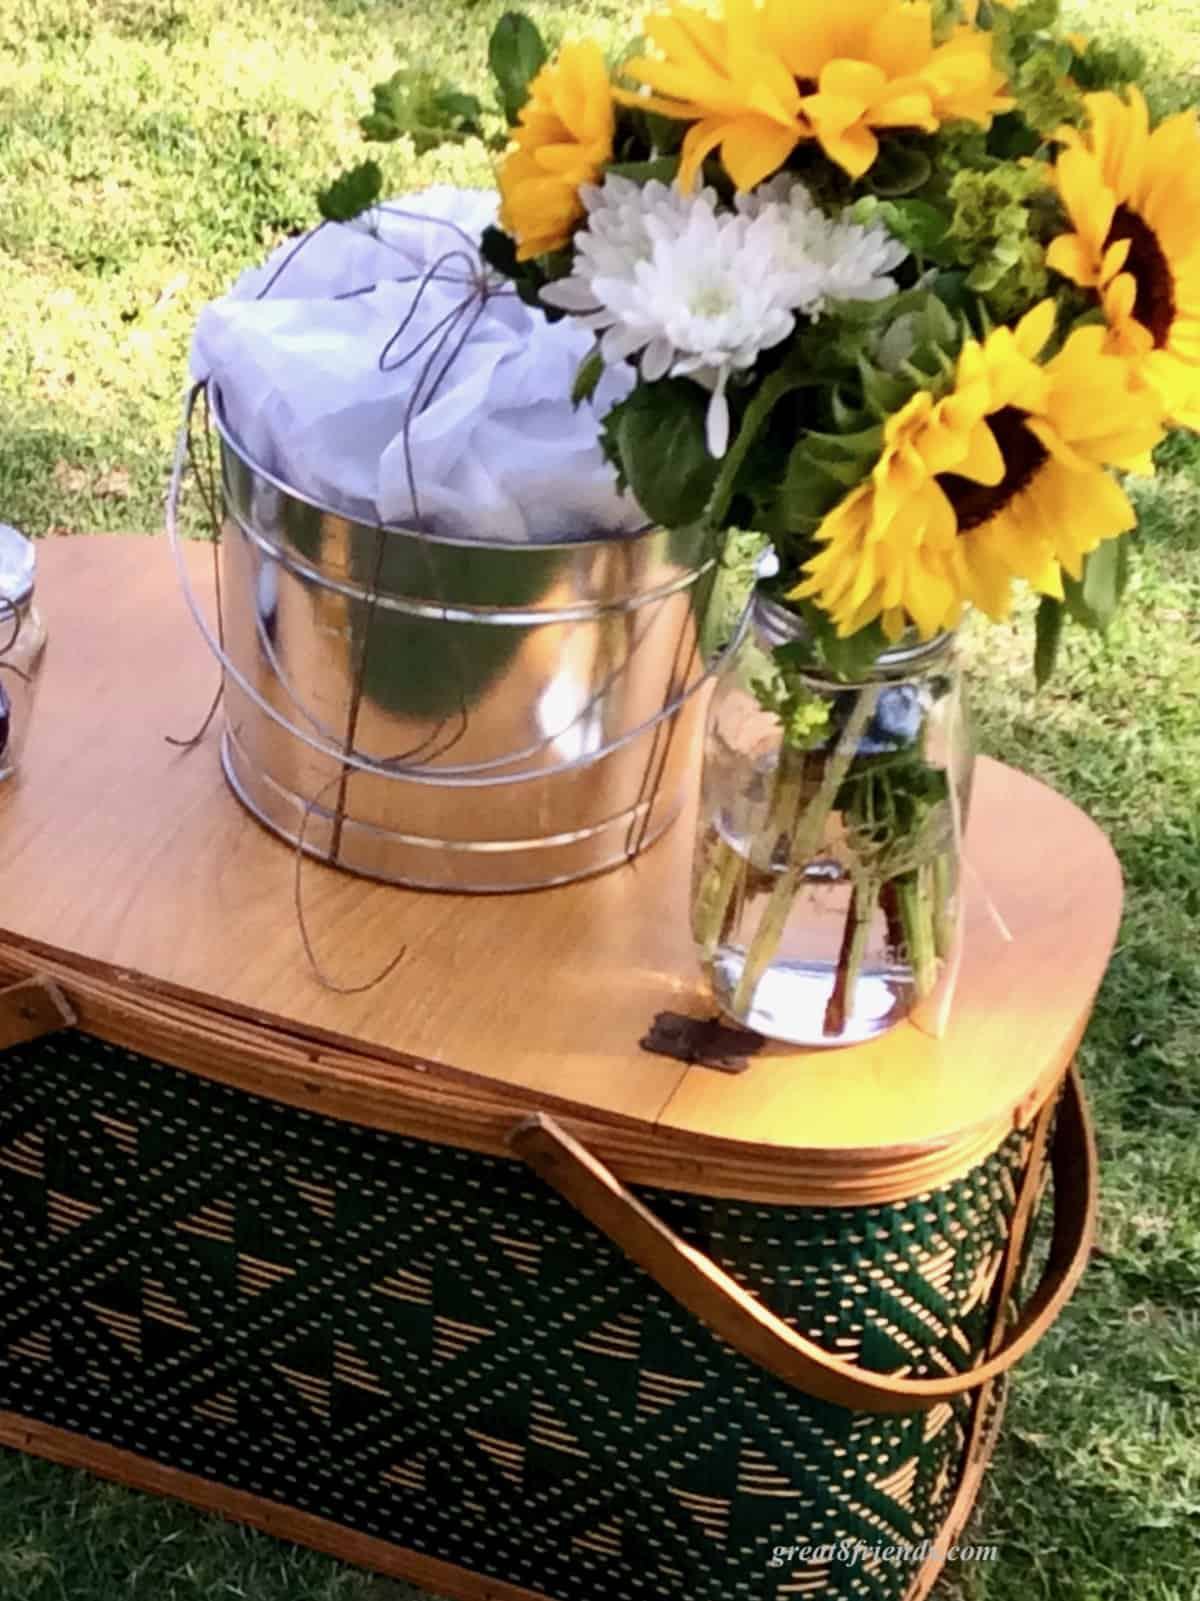 An old fashioned picnic basket with a tin buchet and vase of sunflowers on top.